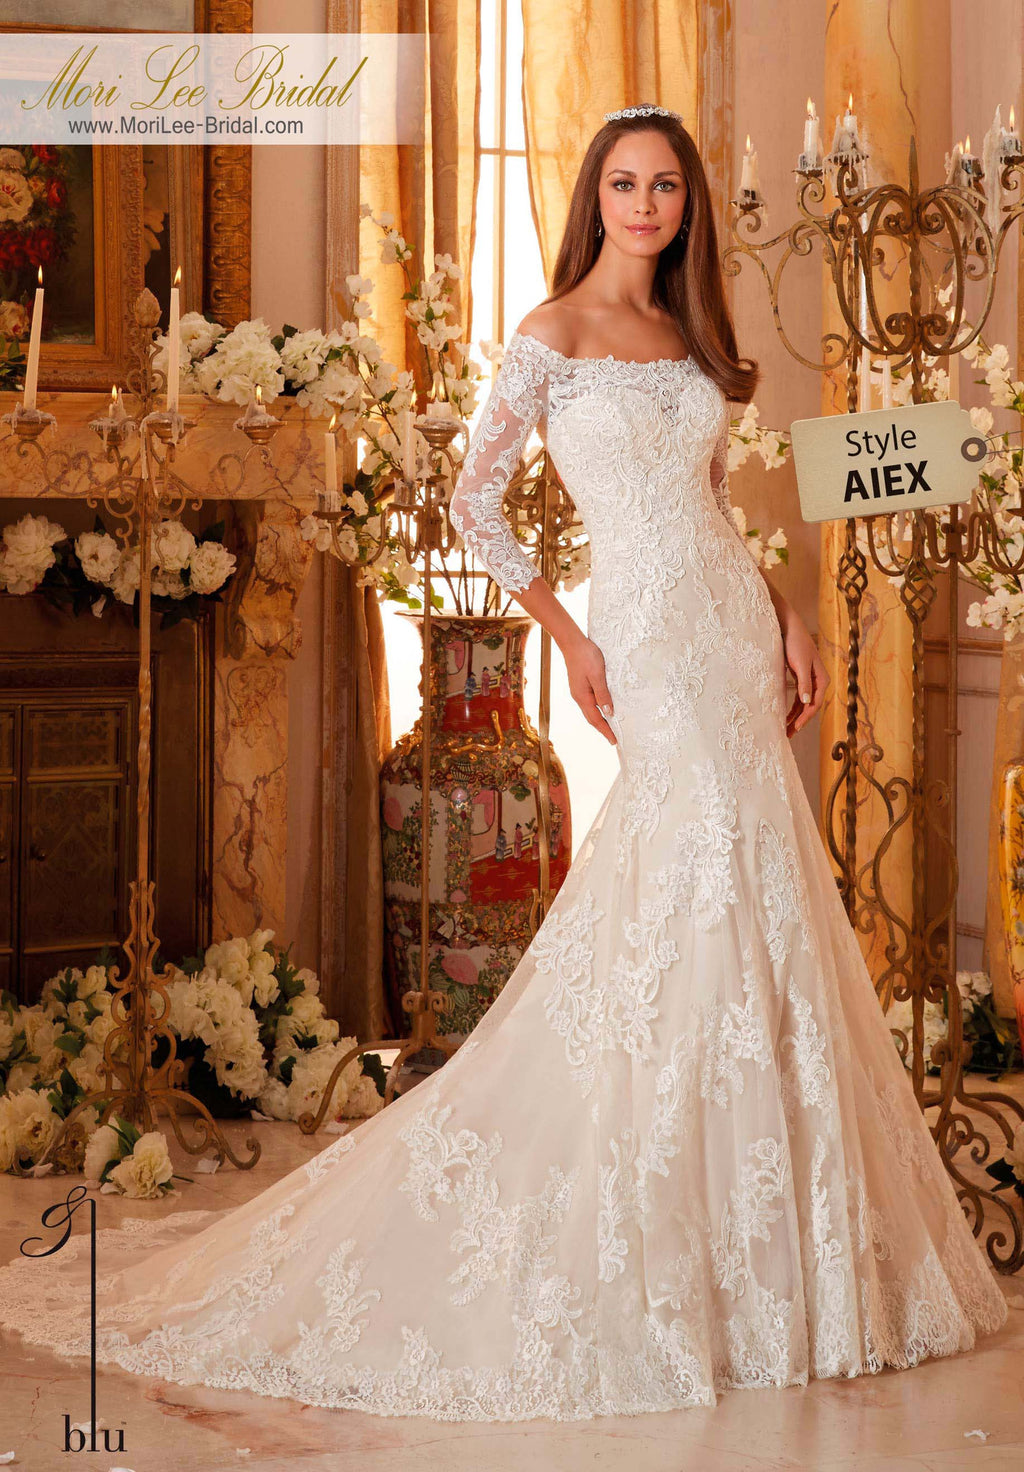 AIEX - Mori Lee Bridal